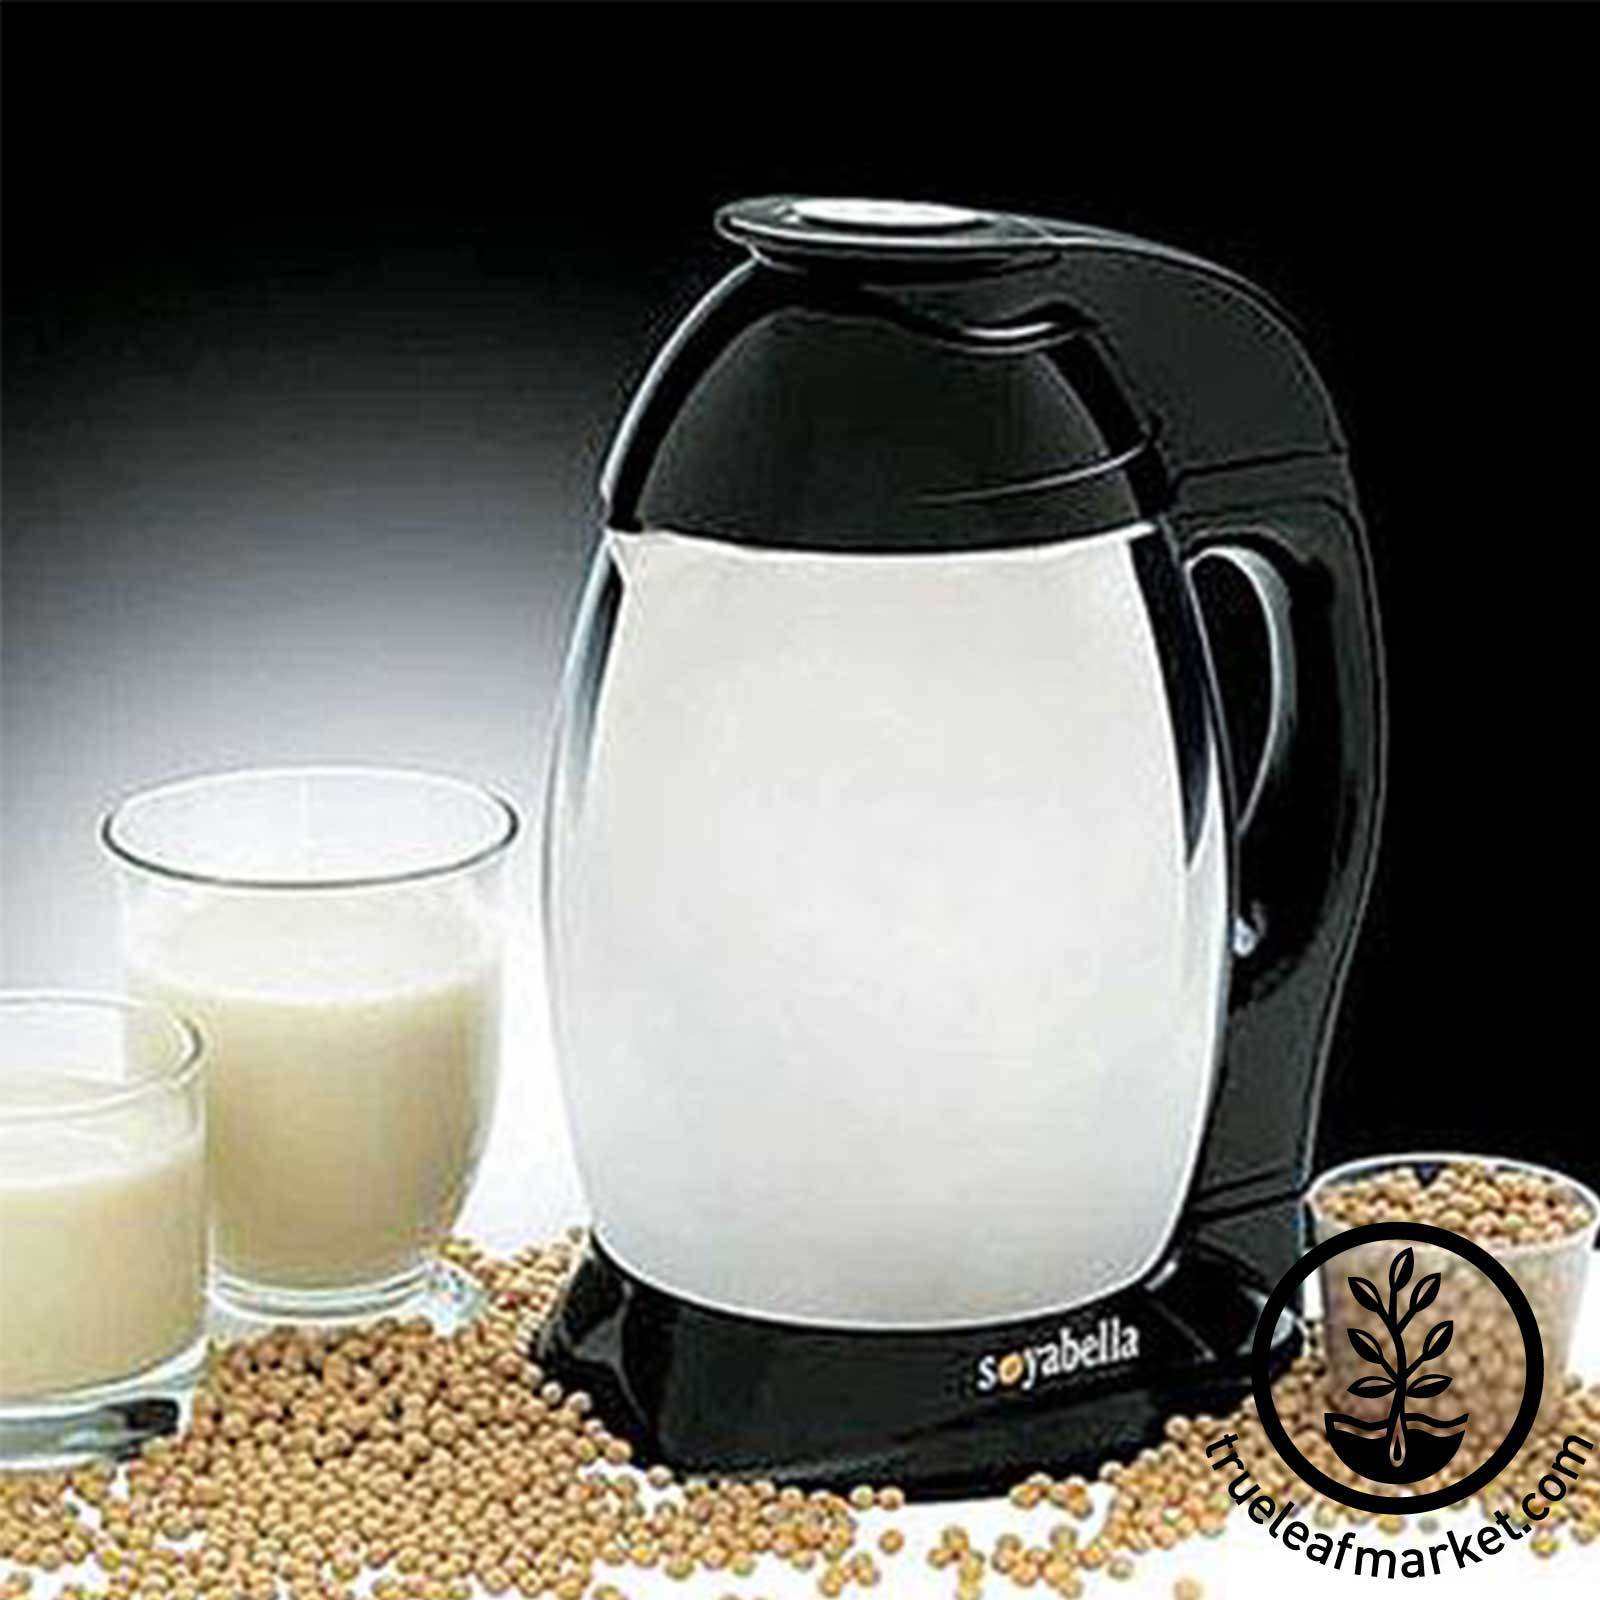 Soyabella Soymilk Maker - Soy Milk Machine